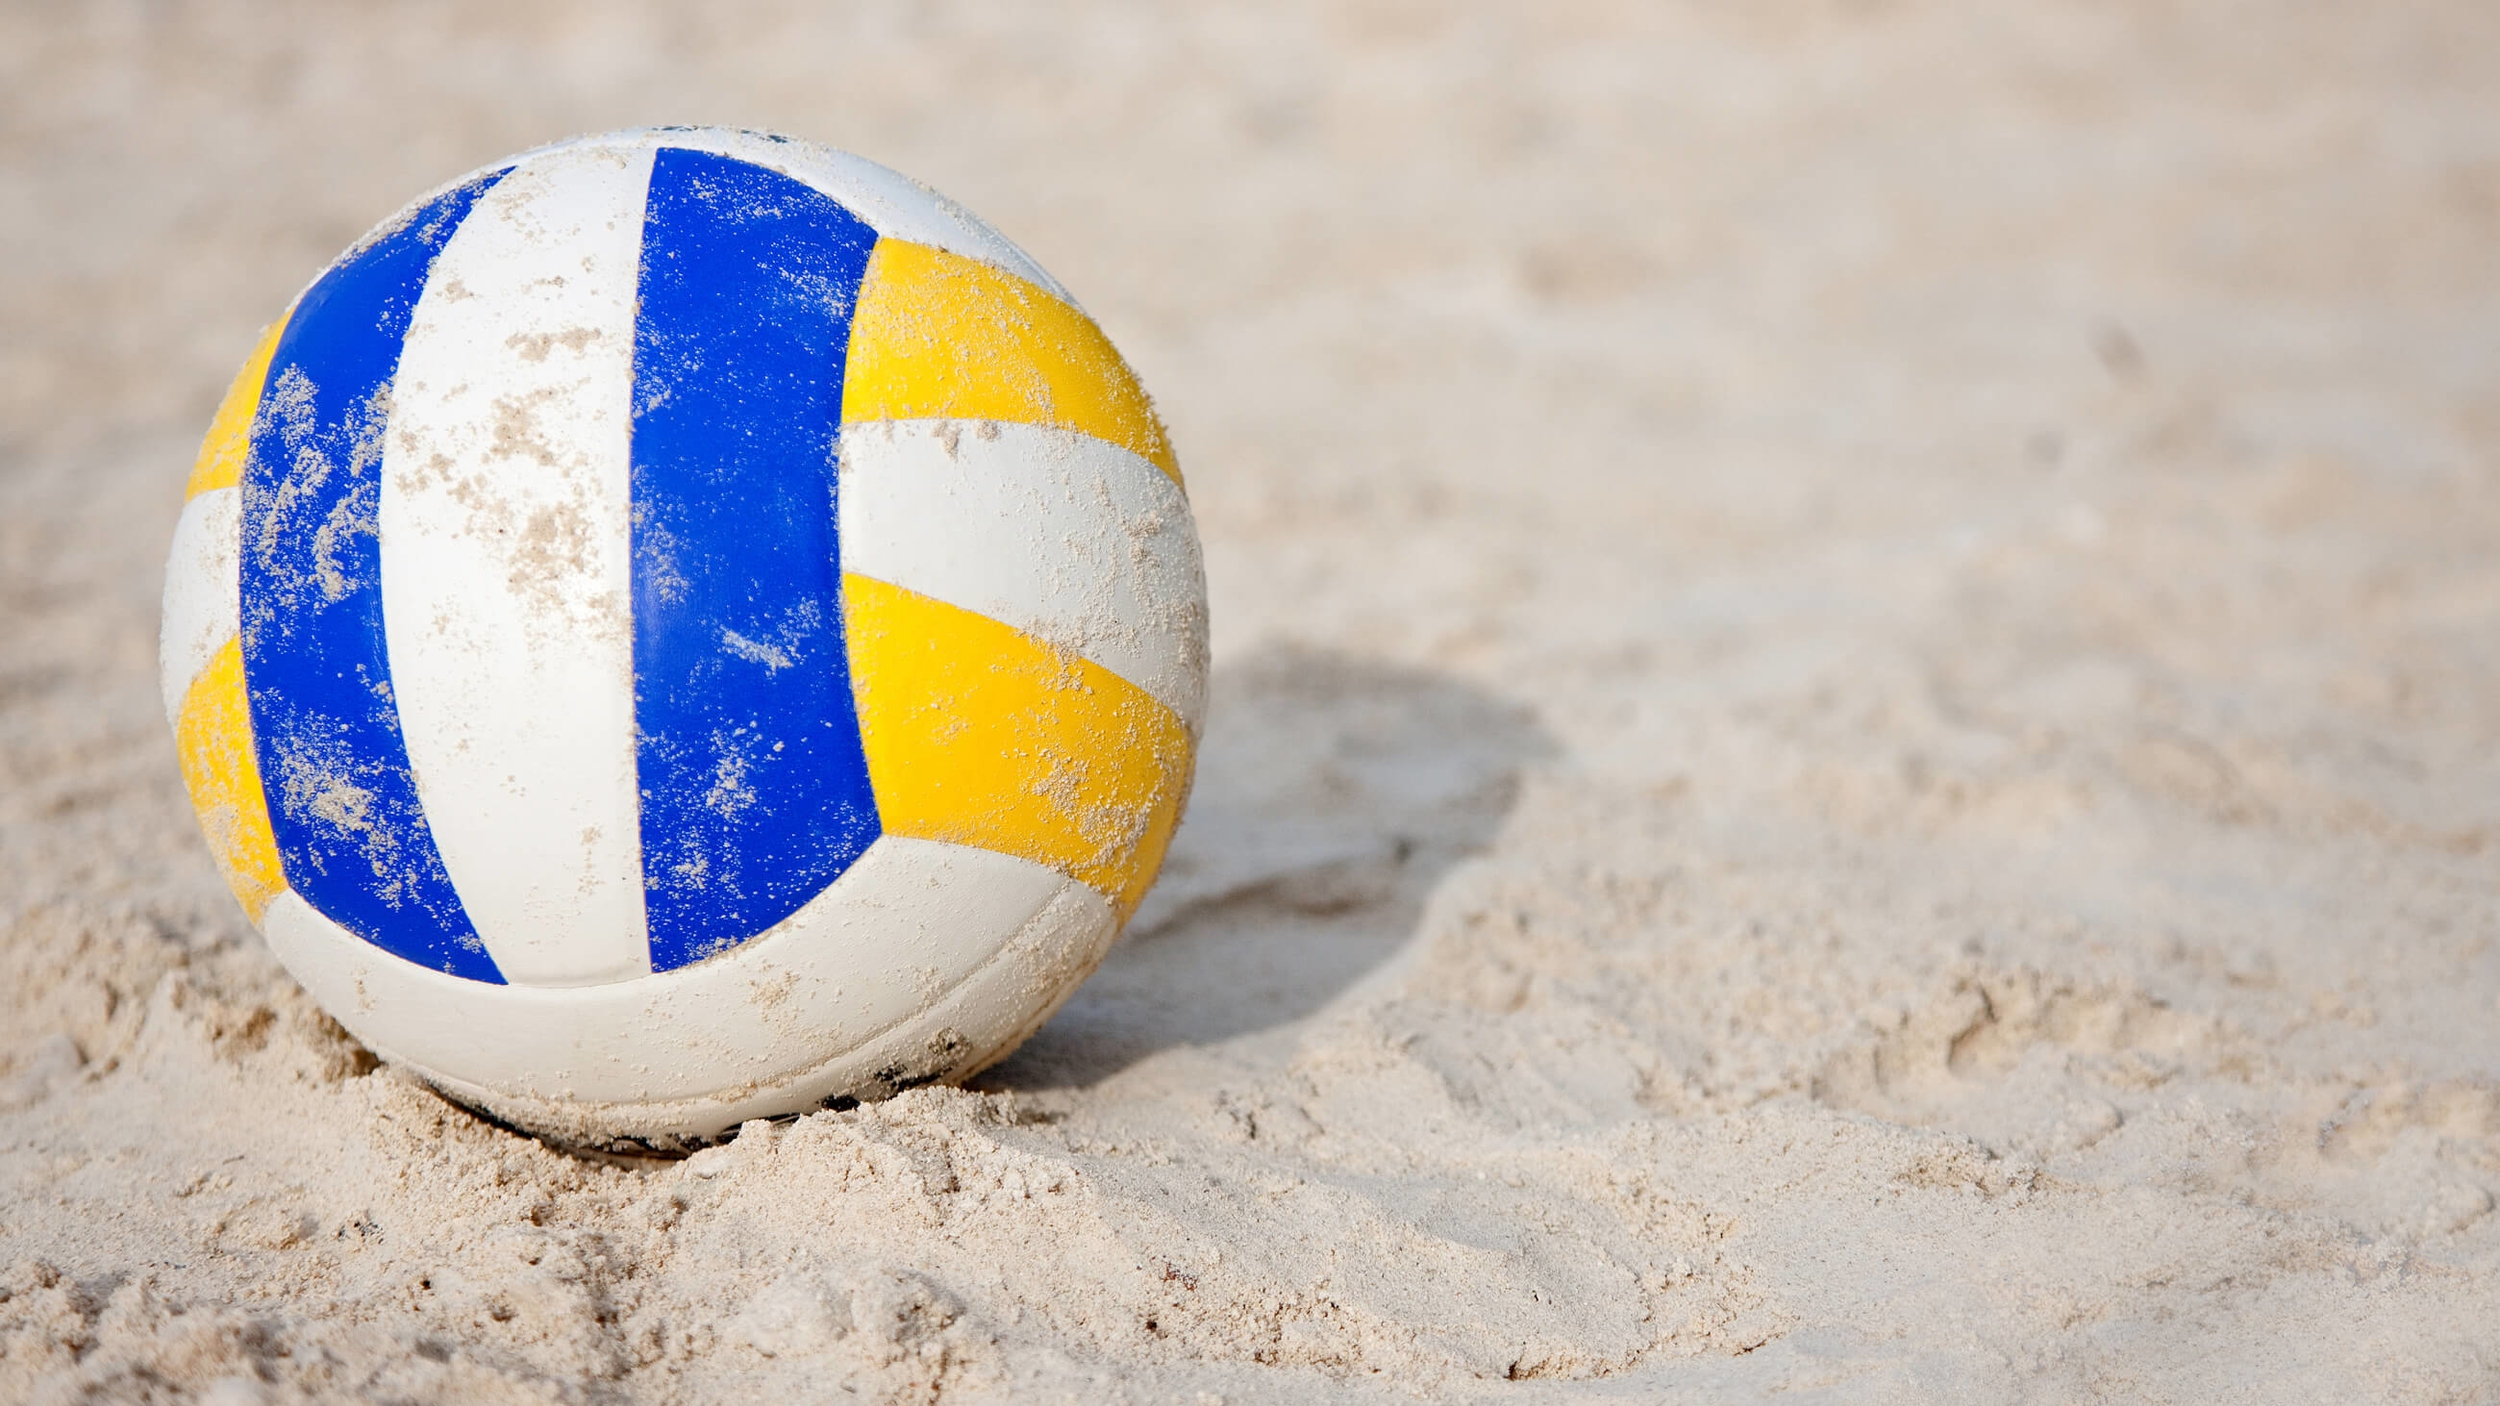 Beach volleyball - Challenge your mates to a game on the beach!